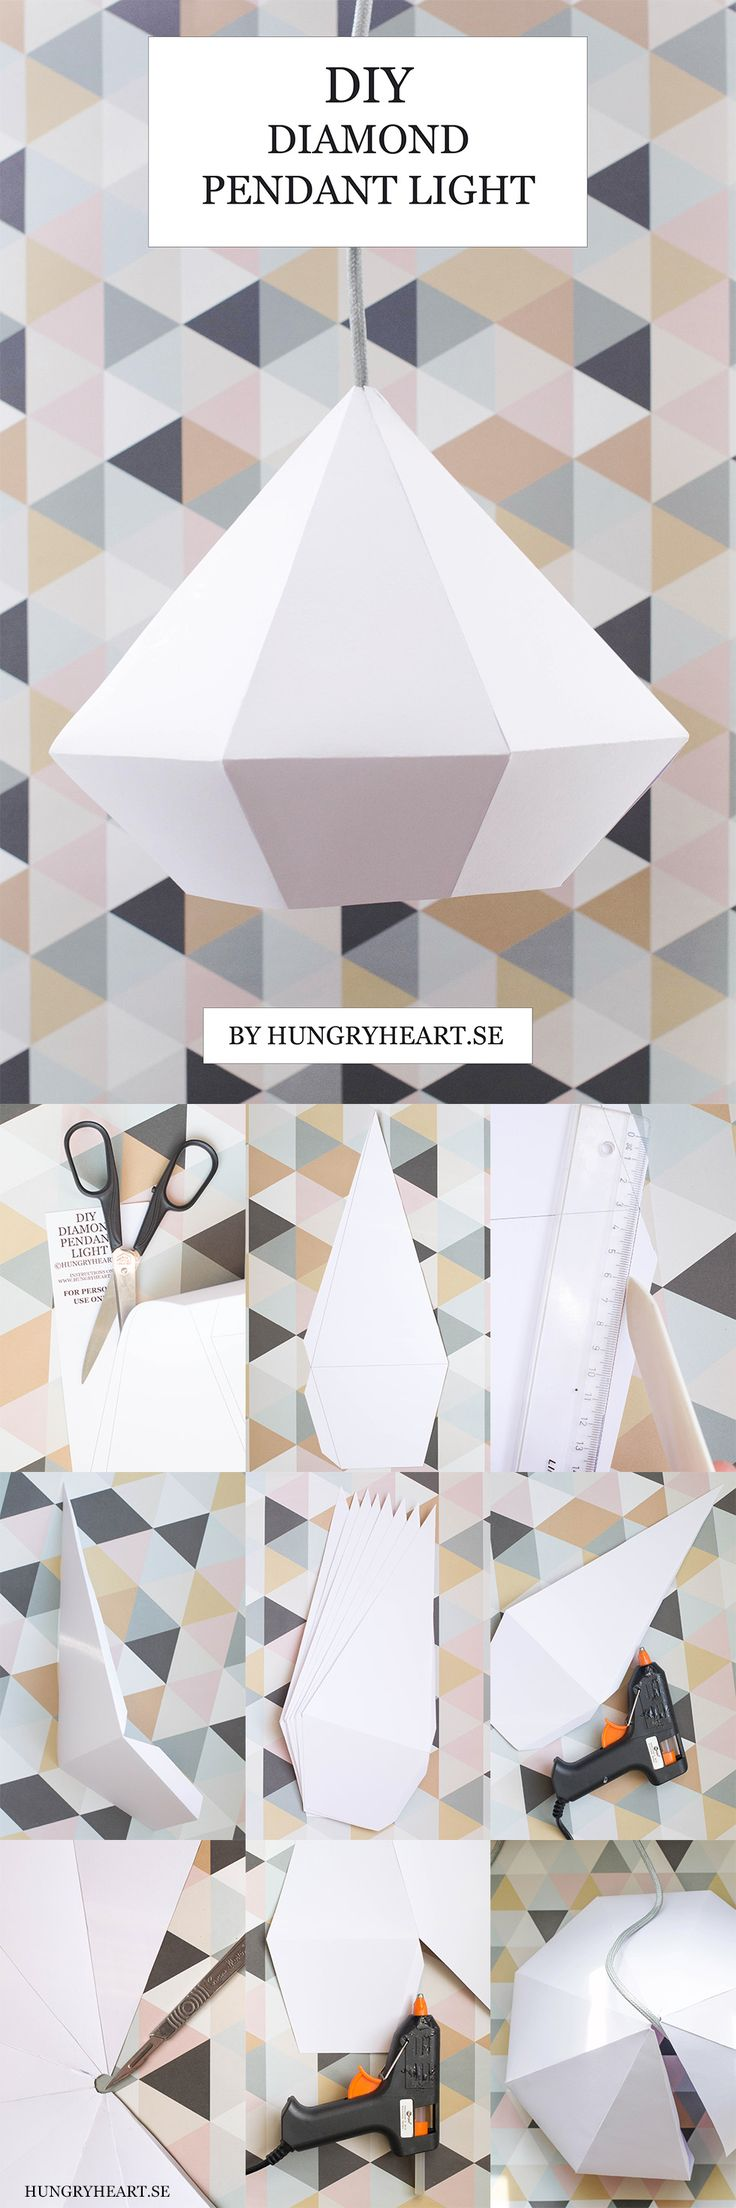 DIY Diamond Pendant Light w FREE Template | Hungry Heart